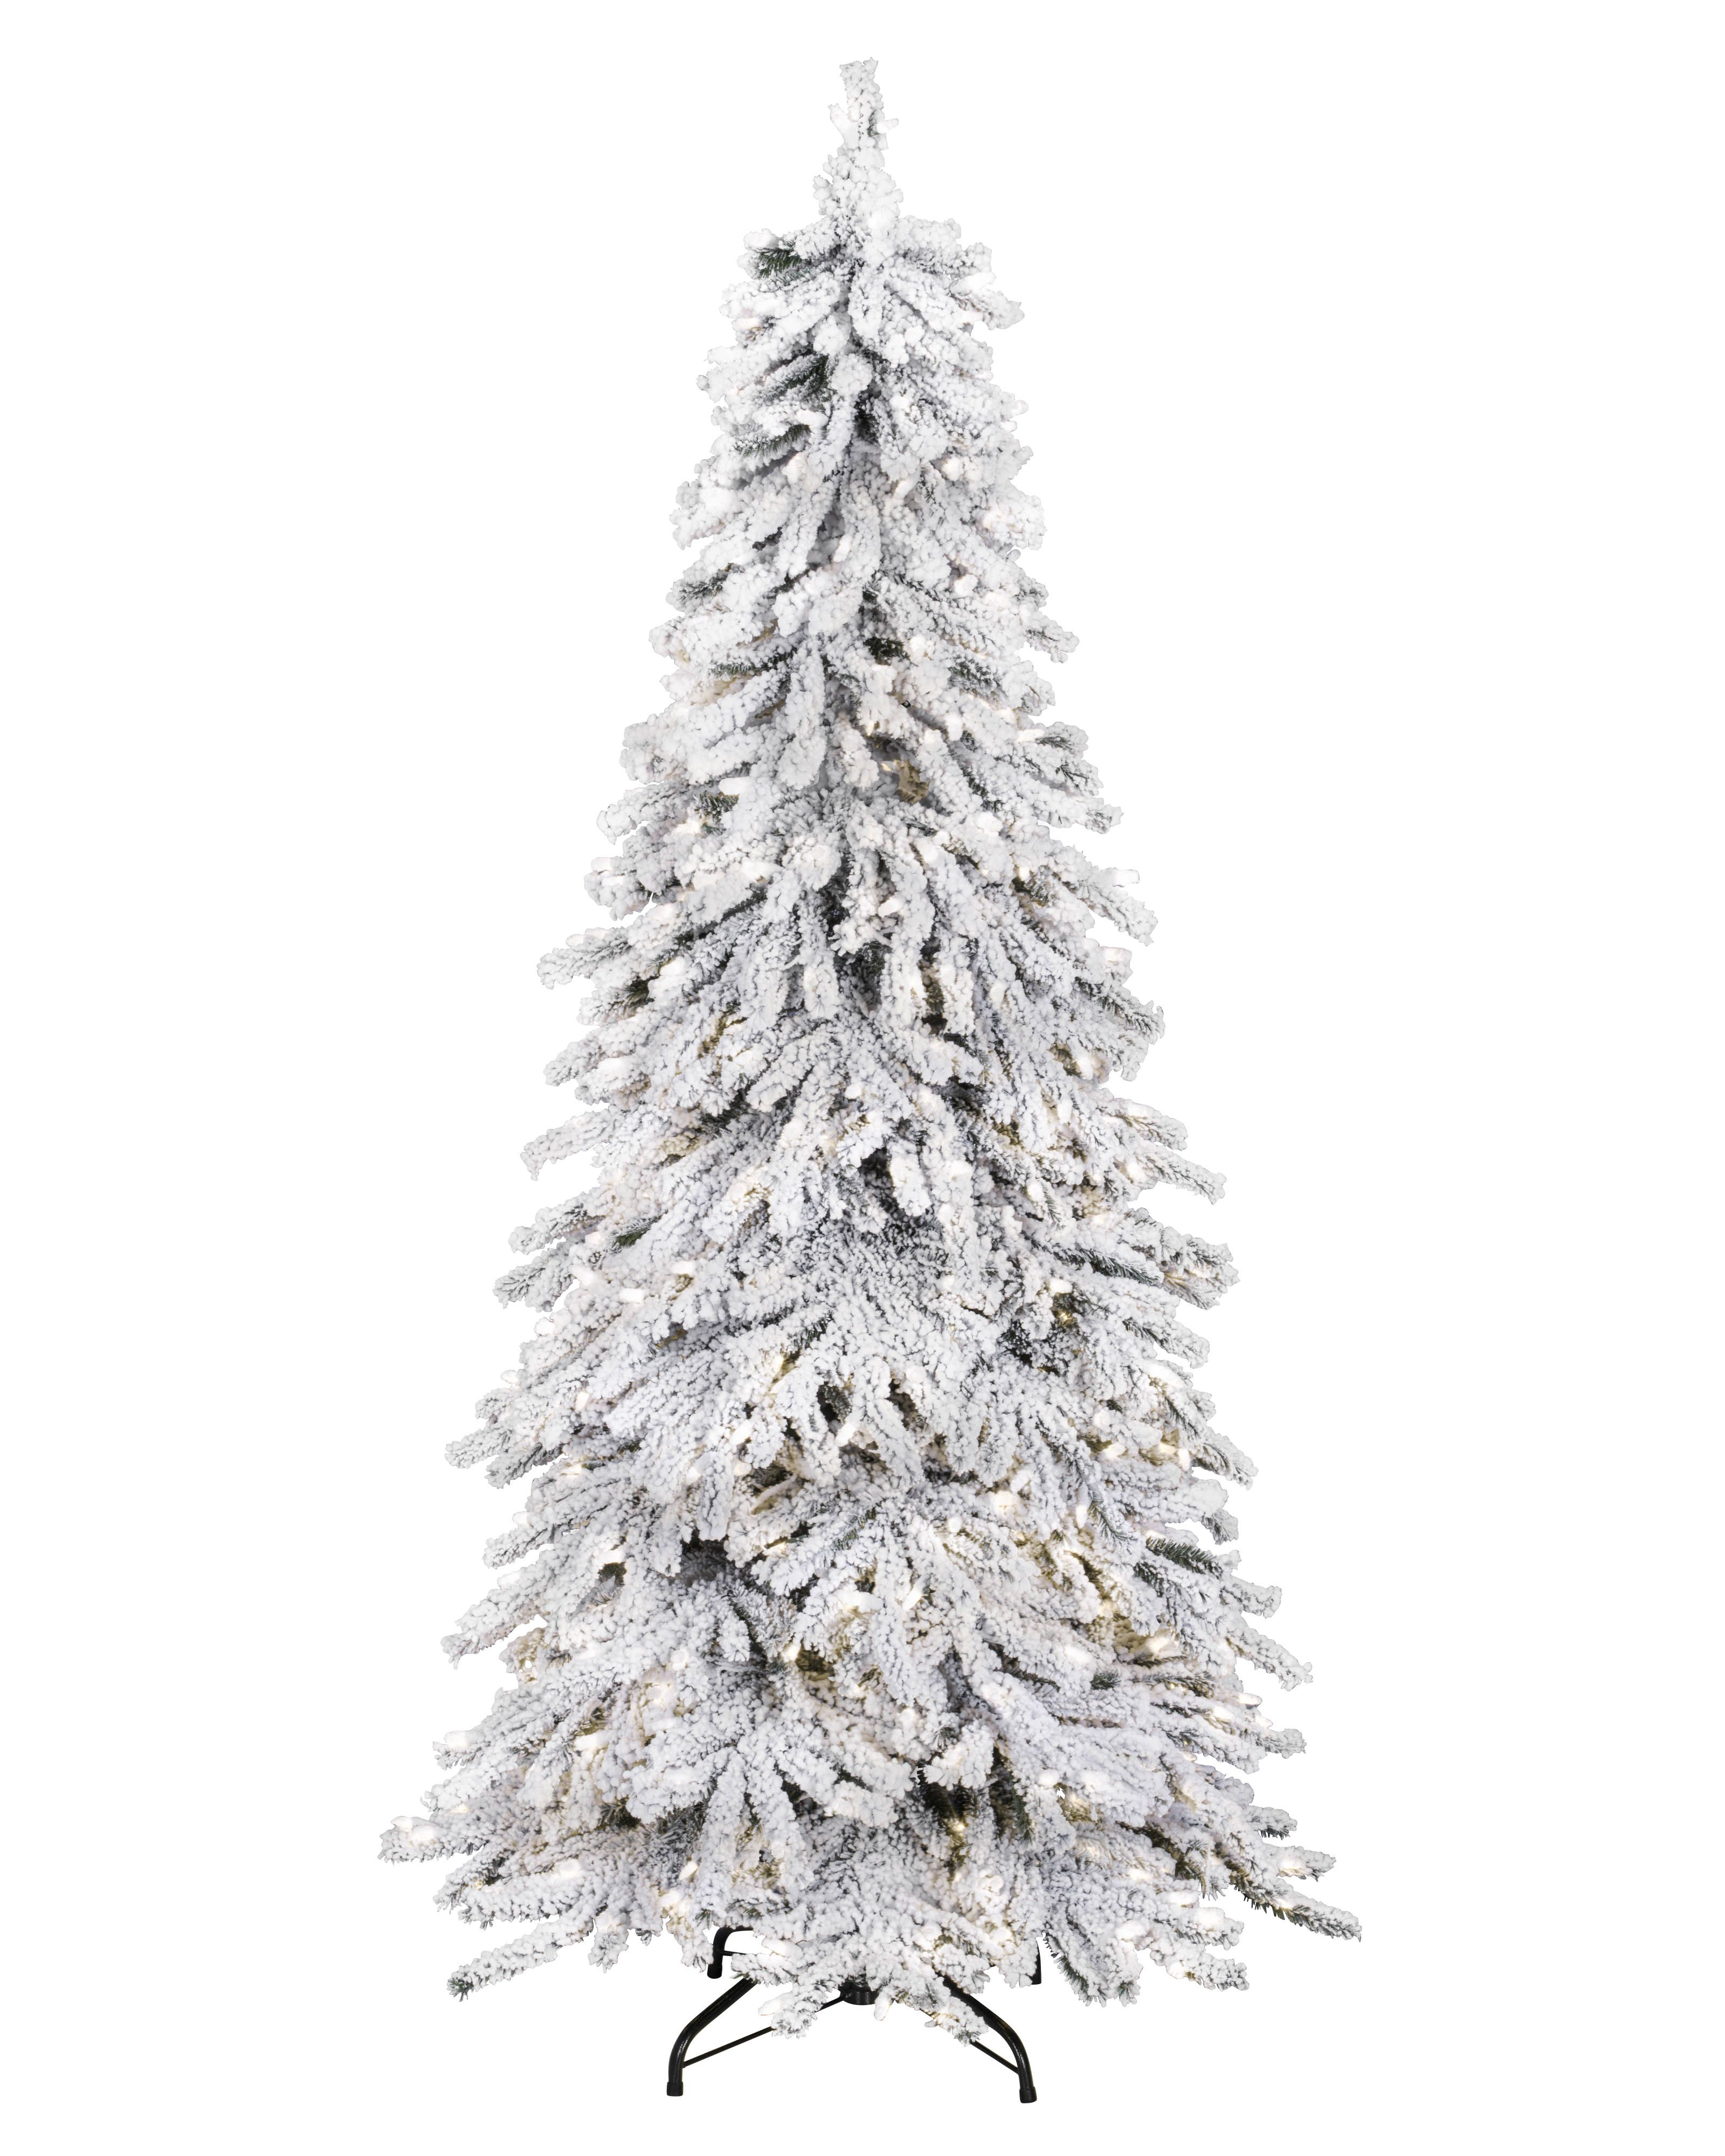 Snowy Spruce Flocked Artificial Christmas Tree Flocked Artificial Christmas Trees Spruce Christmas Tree White Christmas Trees